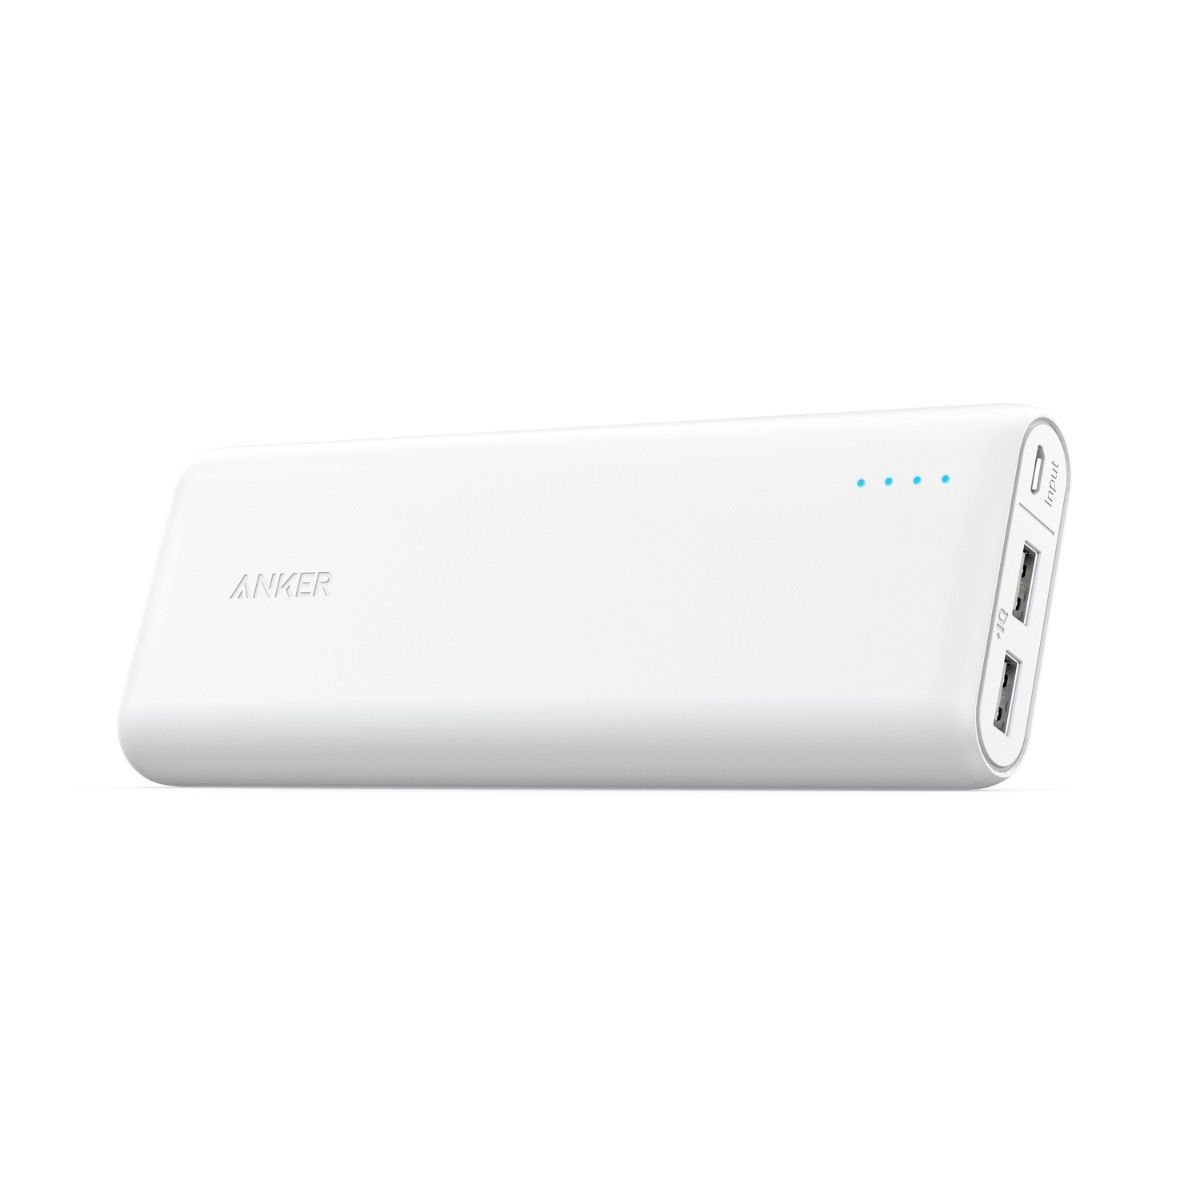 Anker Power Core Powerbank 20100mAh